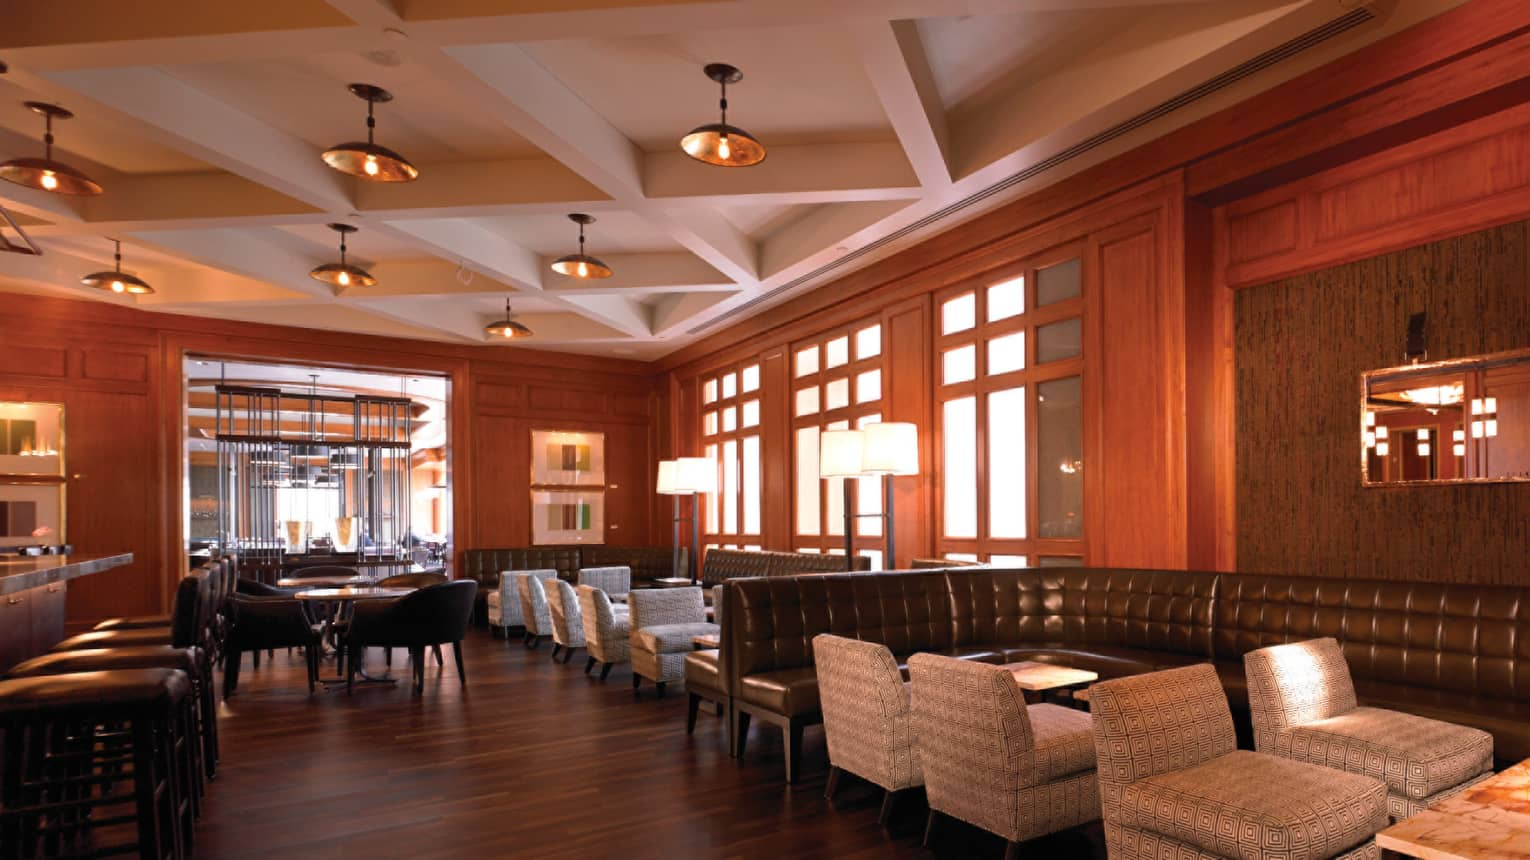 MKT Restaurant dining room with dark wood floors and walls, brown leather benches, plush chairs